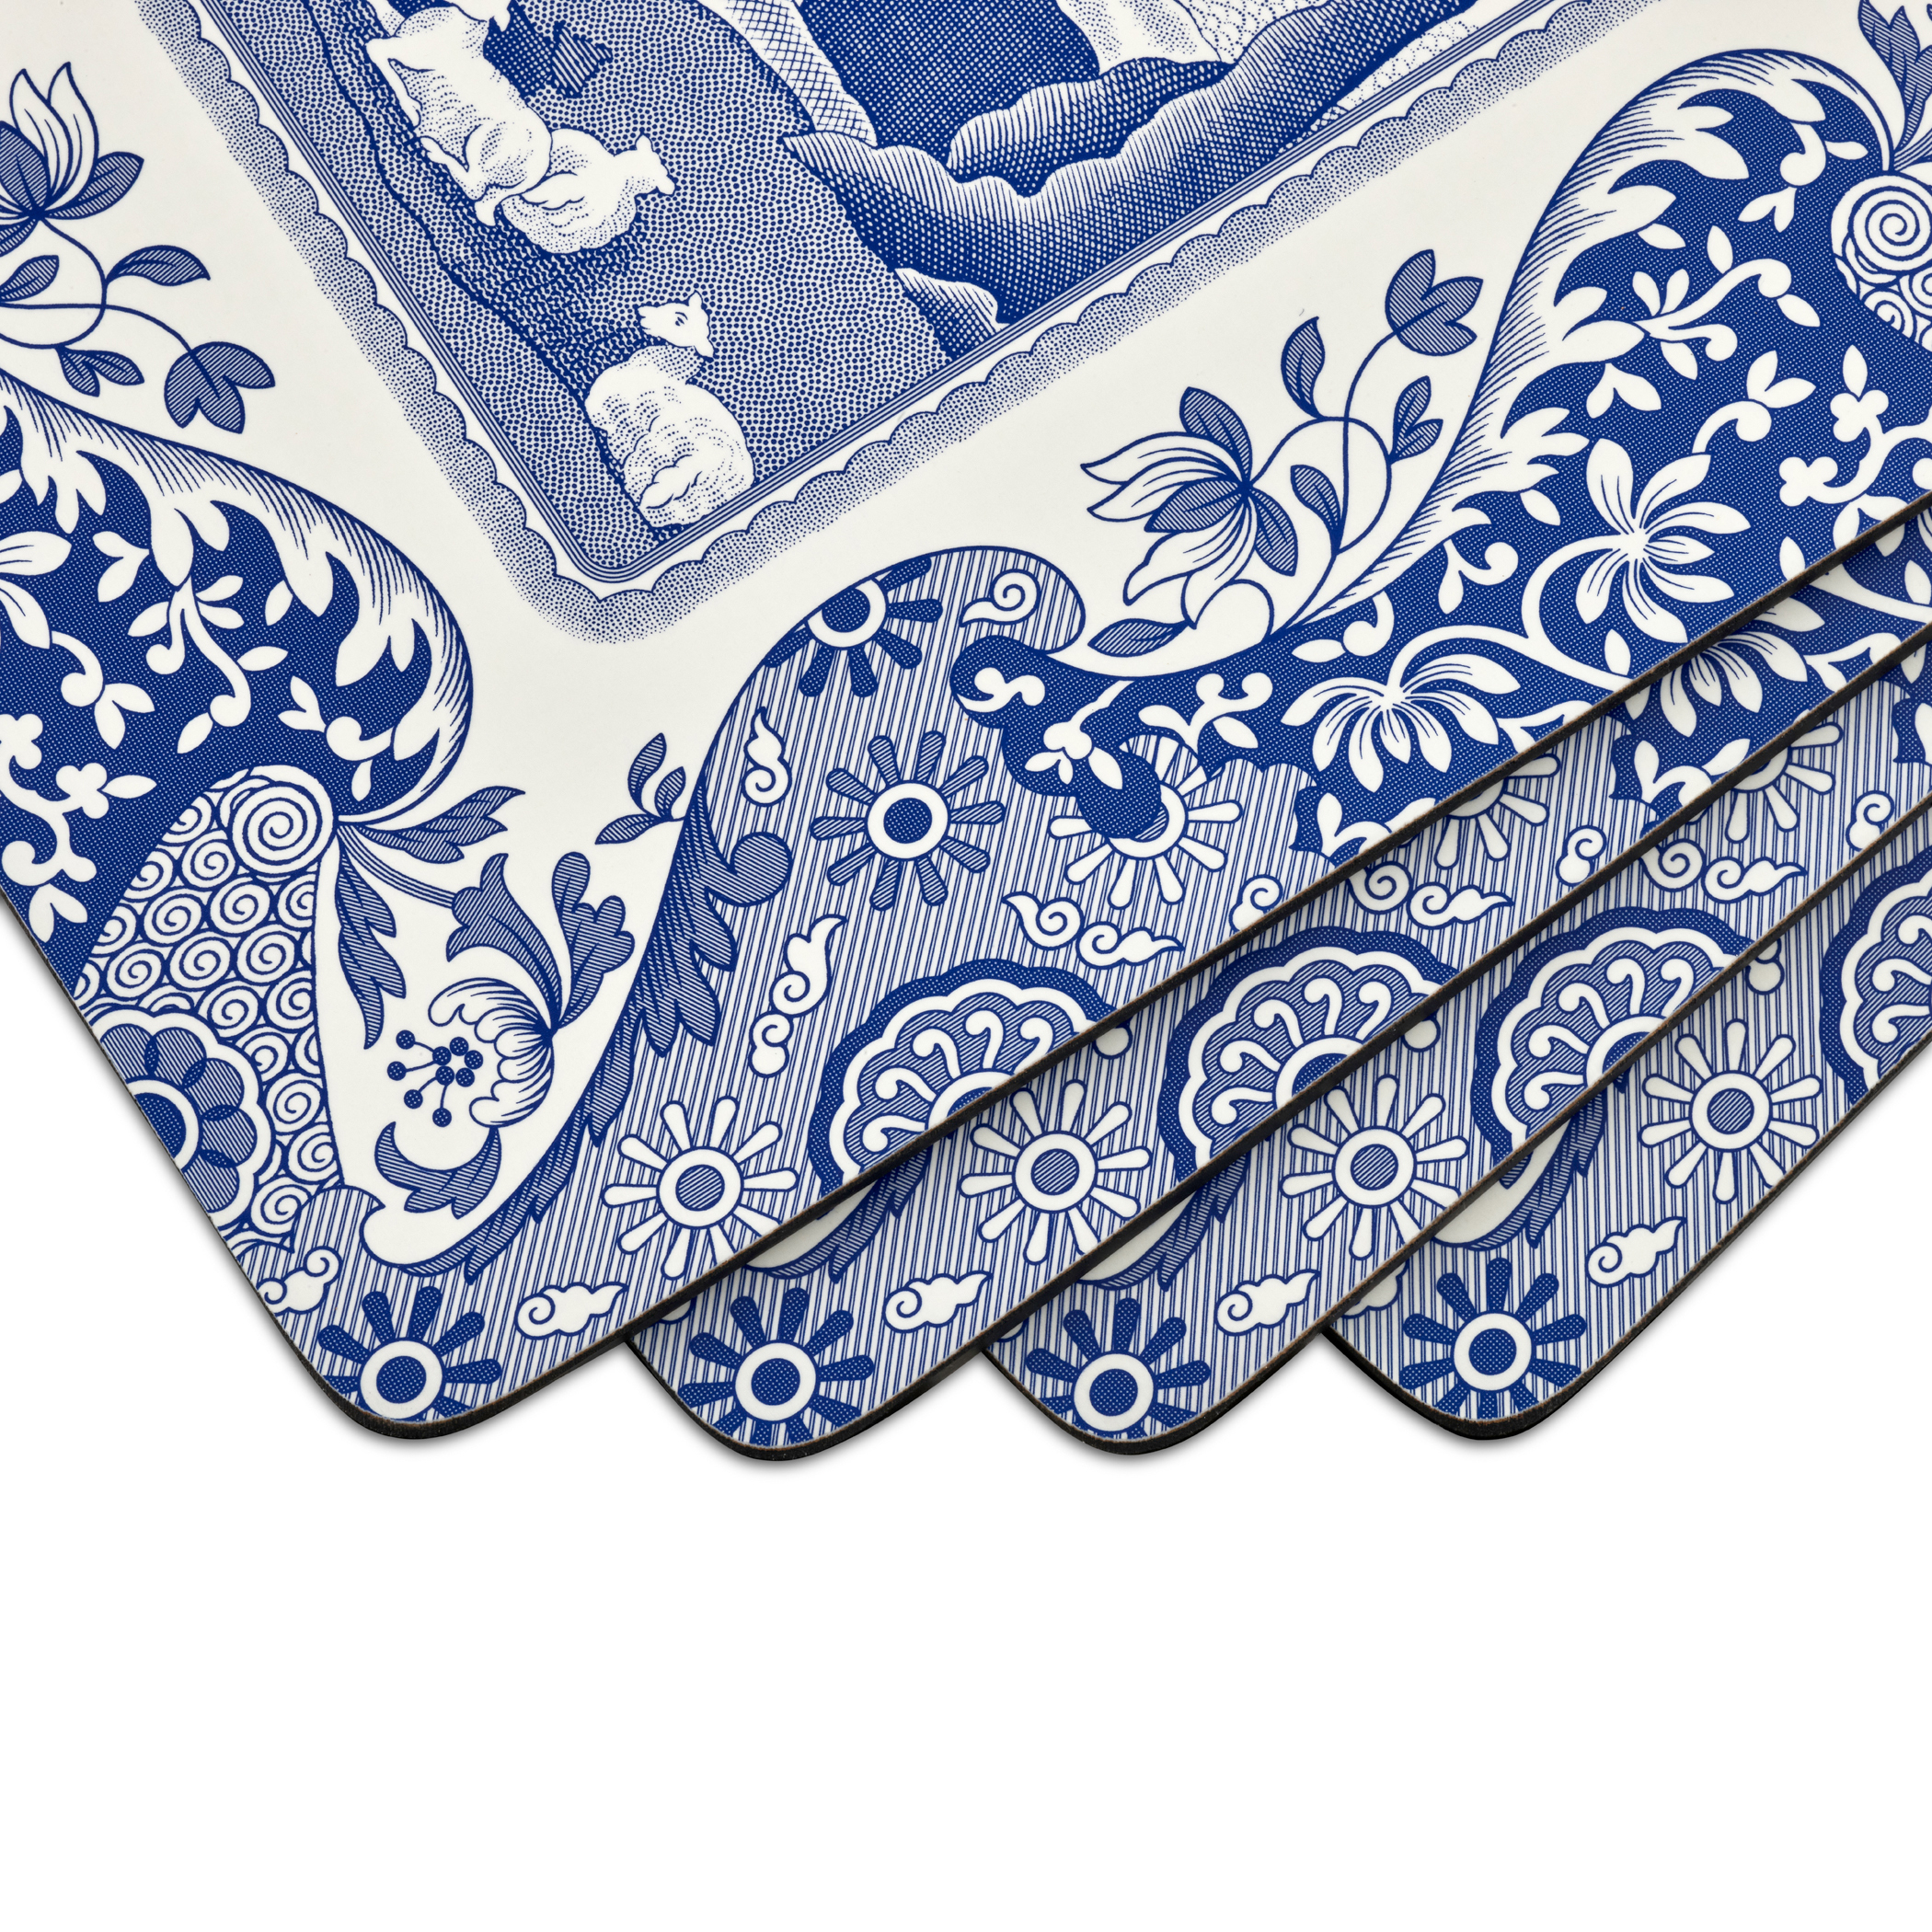 Pimpernel Blue Italian Placemats Set of 4 image number 1